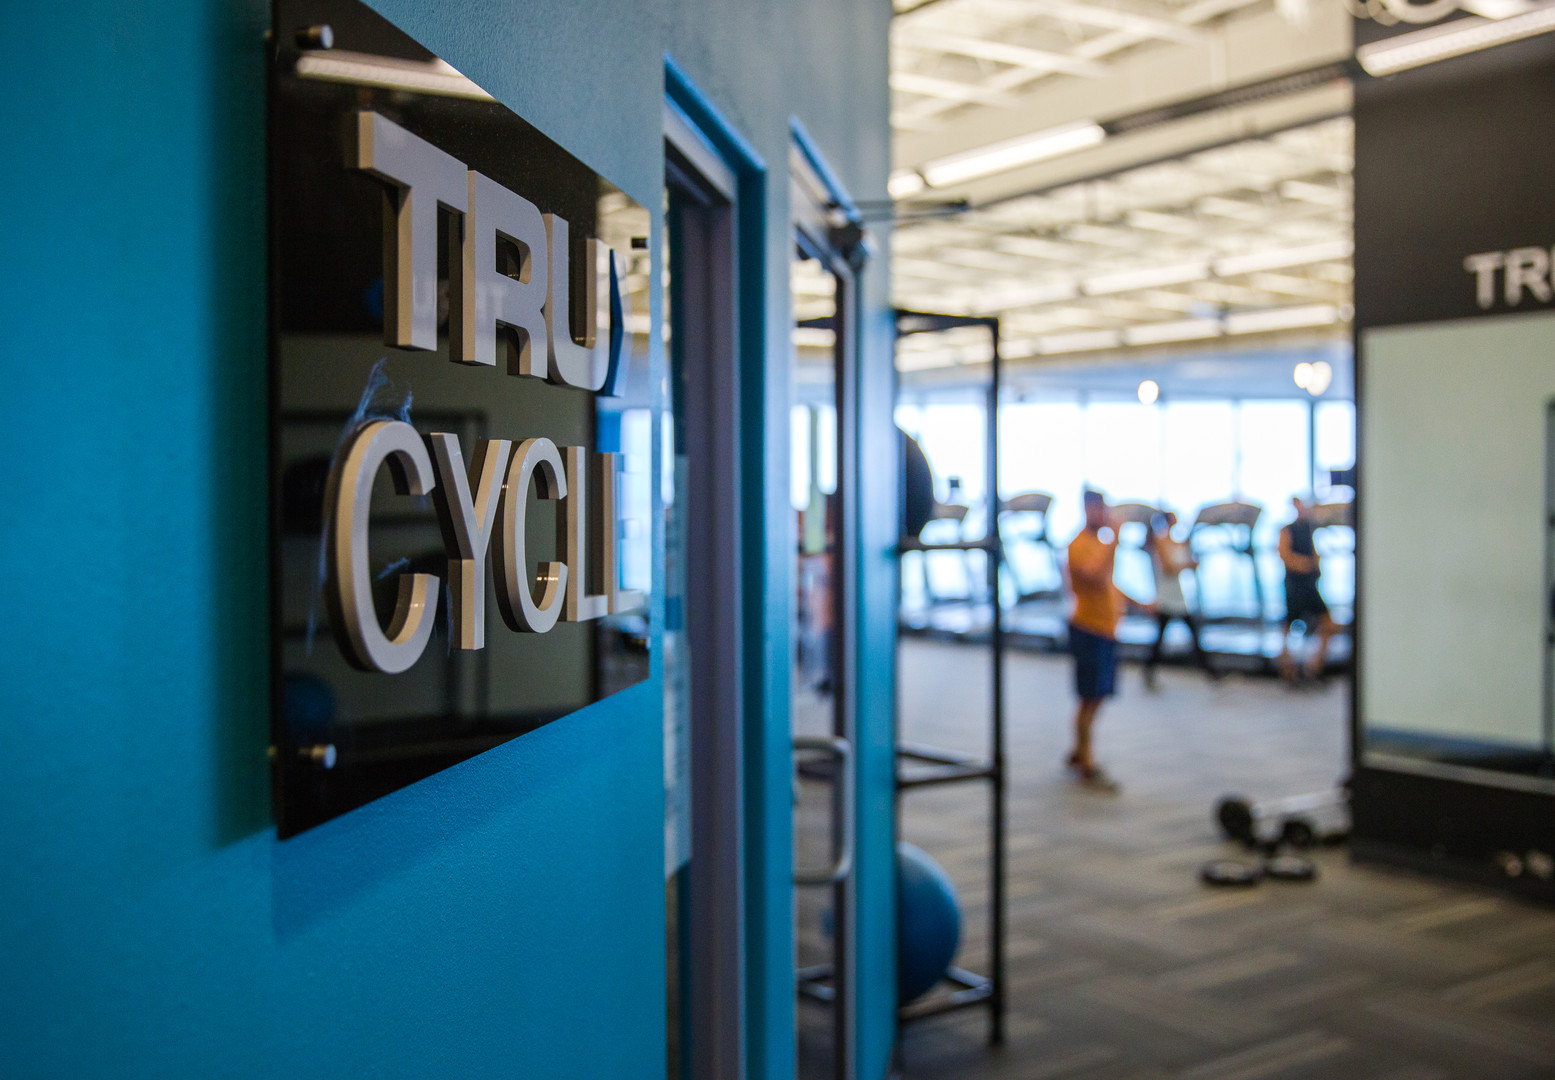 TruFit Gym - Interior 2.jpg